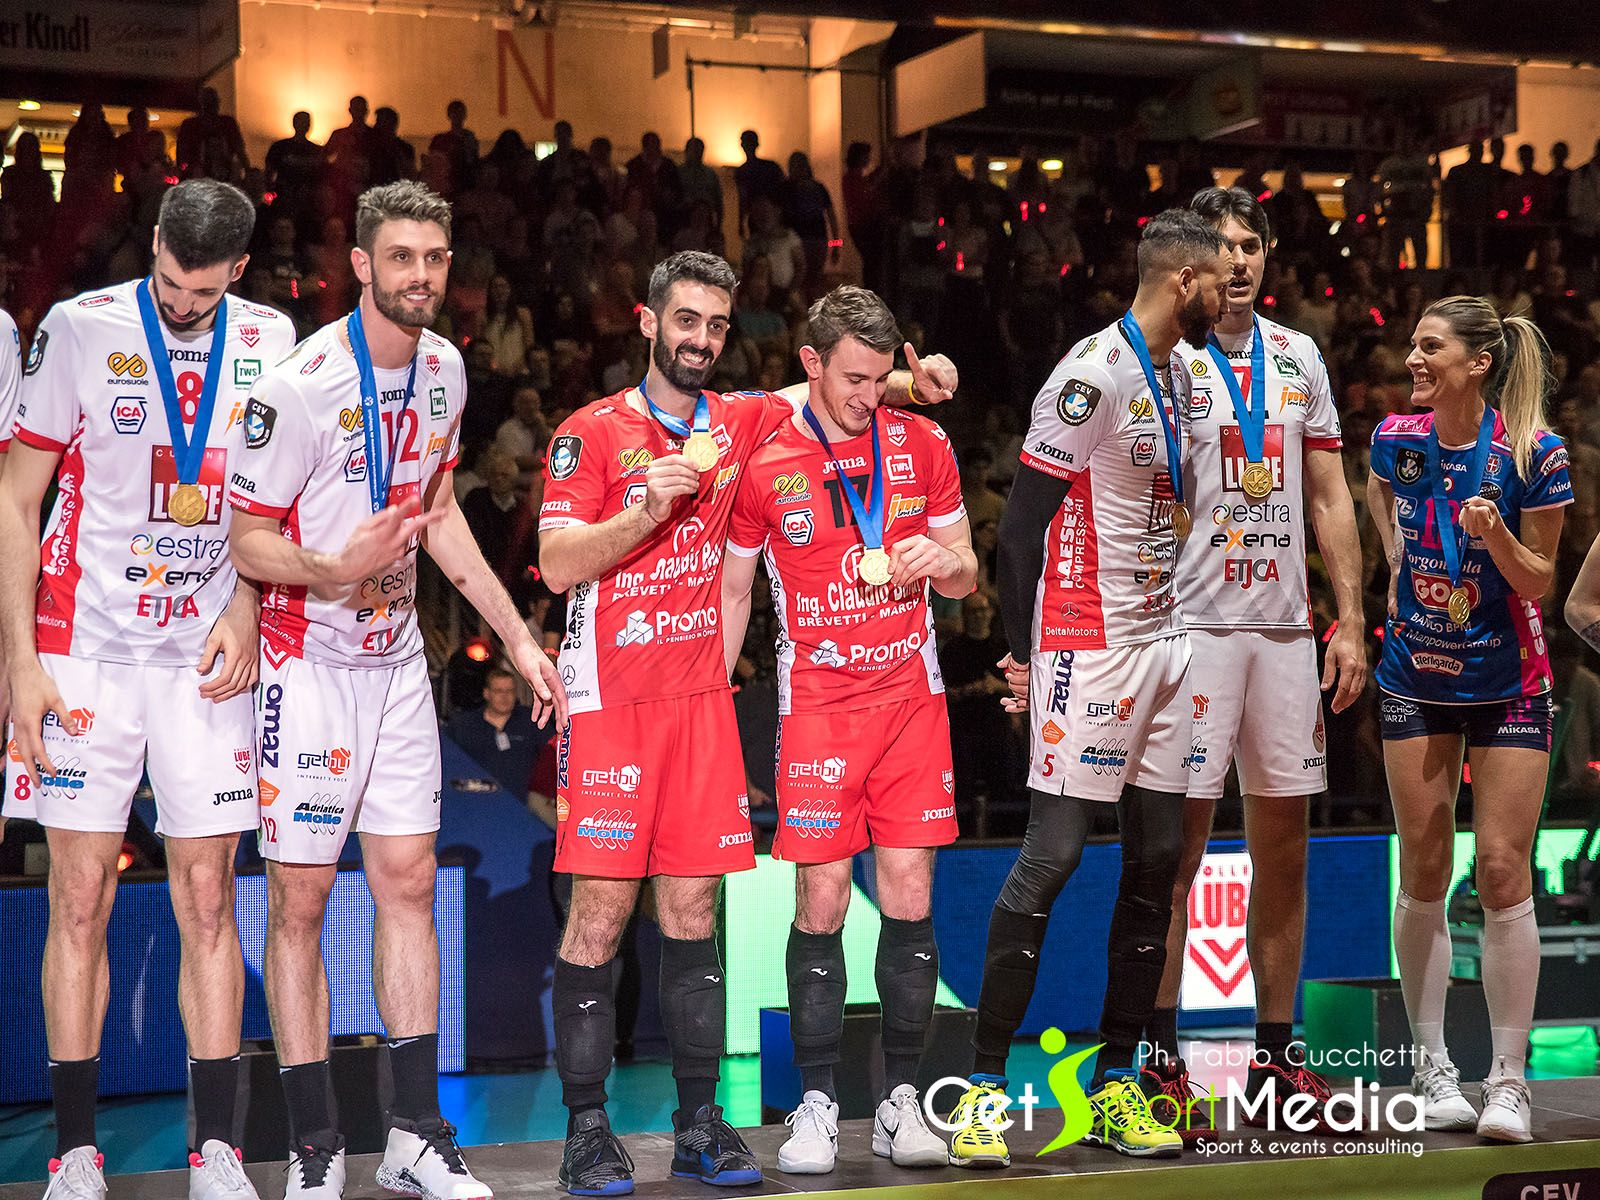 FABIO BALASO AND ANDREA MARCHISIO – GOLD MEDAL – 2019 CHAMPIONS LEAGUE